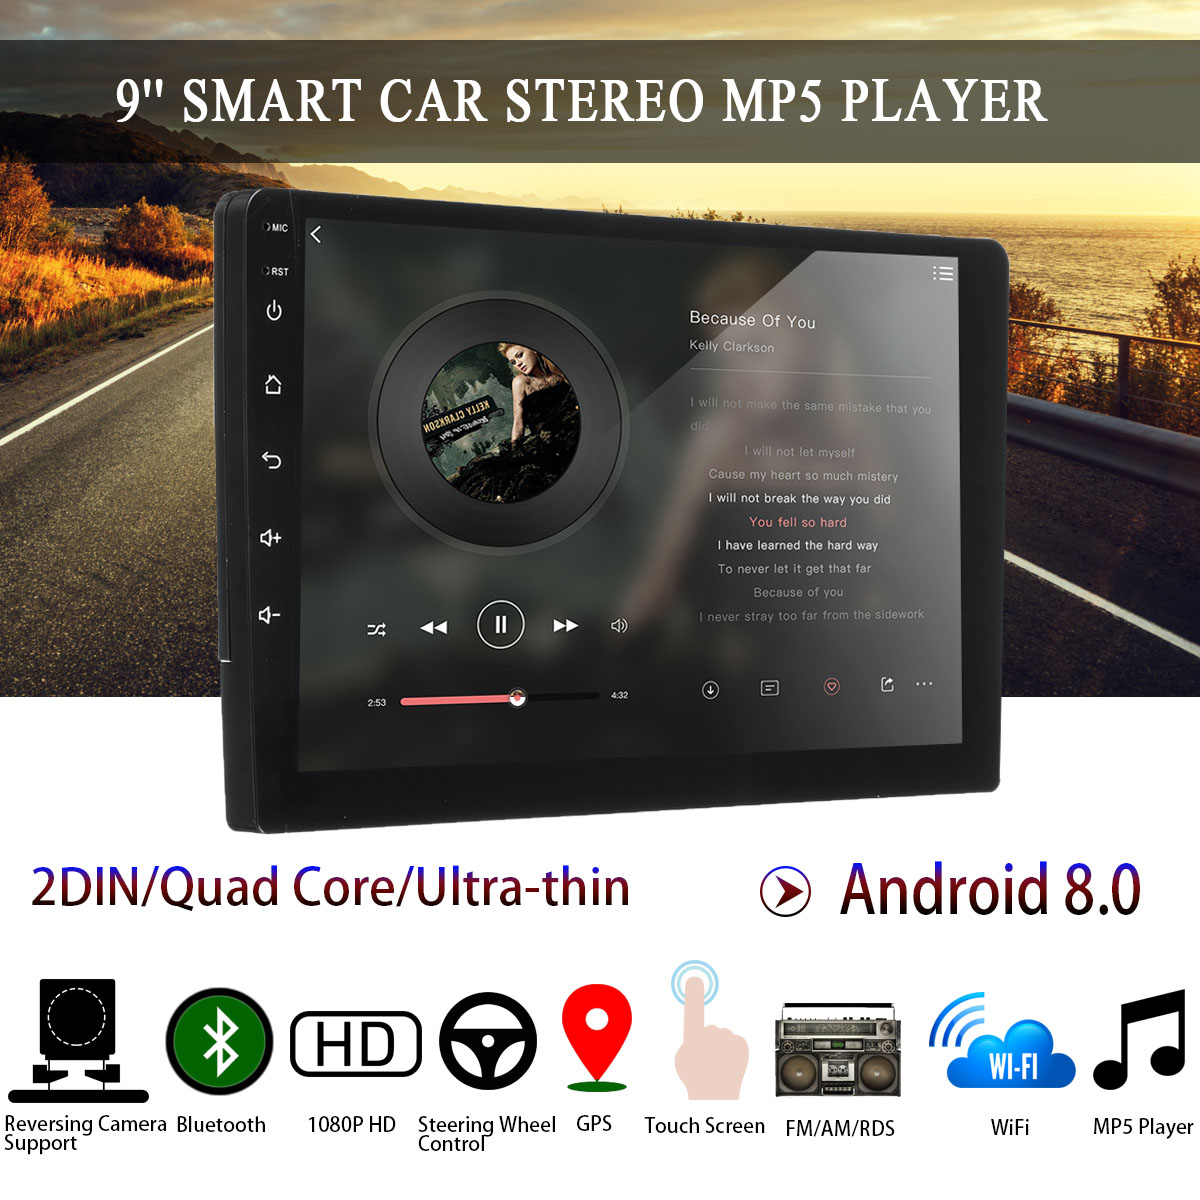 Car Multimedia Player 9 1G+16G Car Stereo 2 DIN for Android 8 bluetooth WIFI GPS Nav Quad Core Radio Video MP5 PlayerCar Multimedia Player 9 1G+16G Car Stereo 2 DIN for Android 8 bluetooth WIFI GPS Nav Quad Core Radio Video MP5 Player